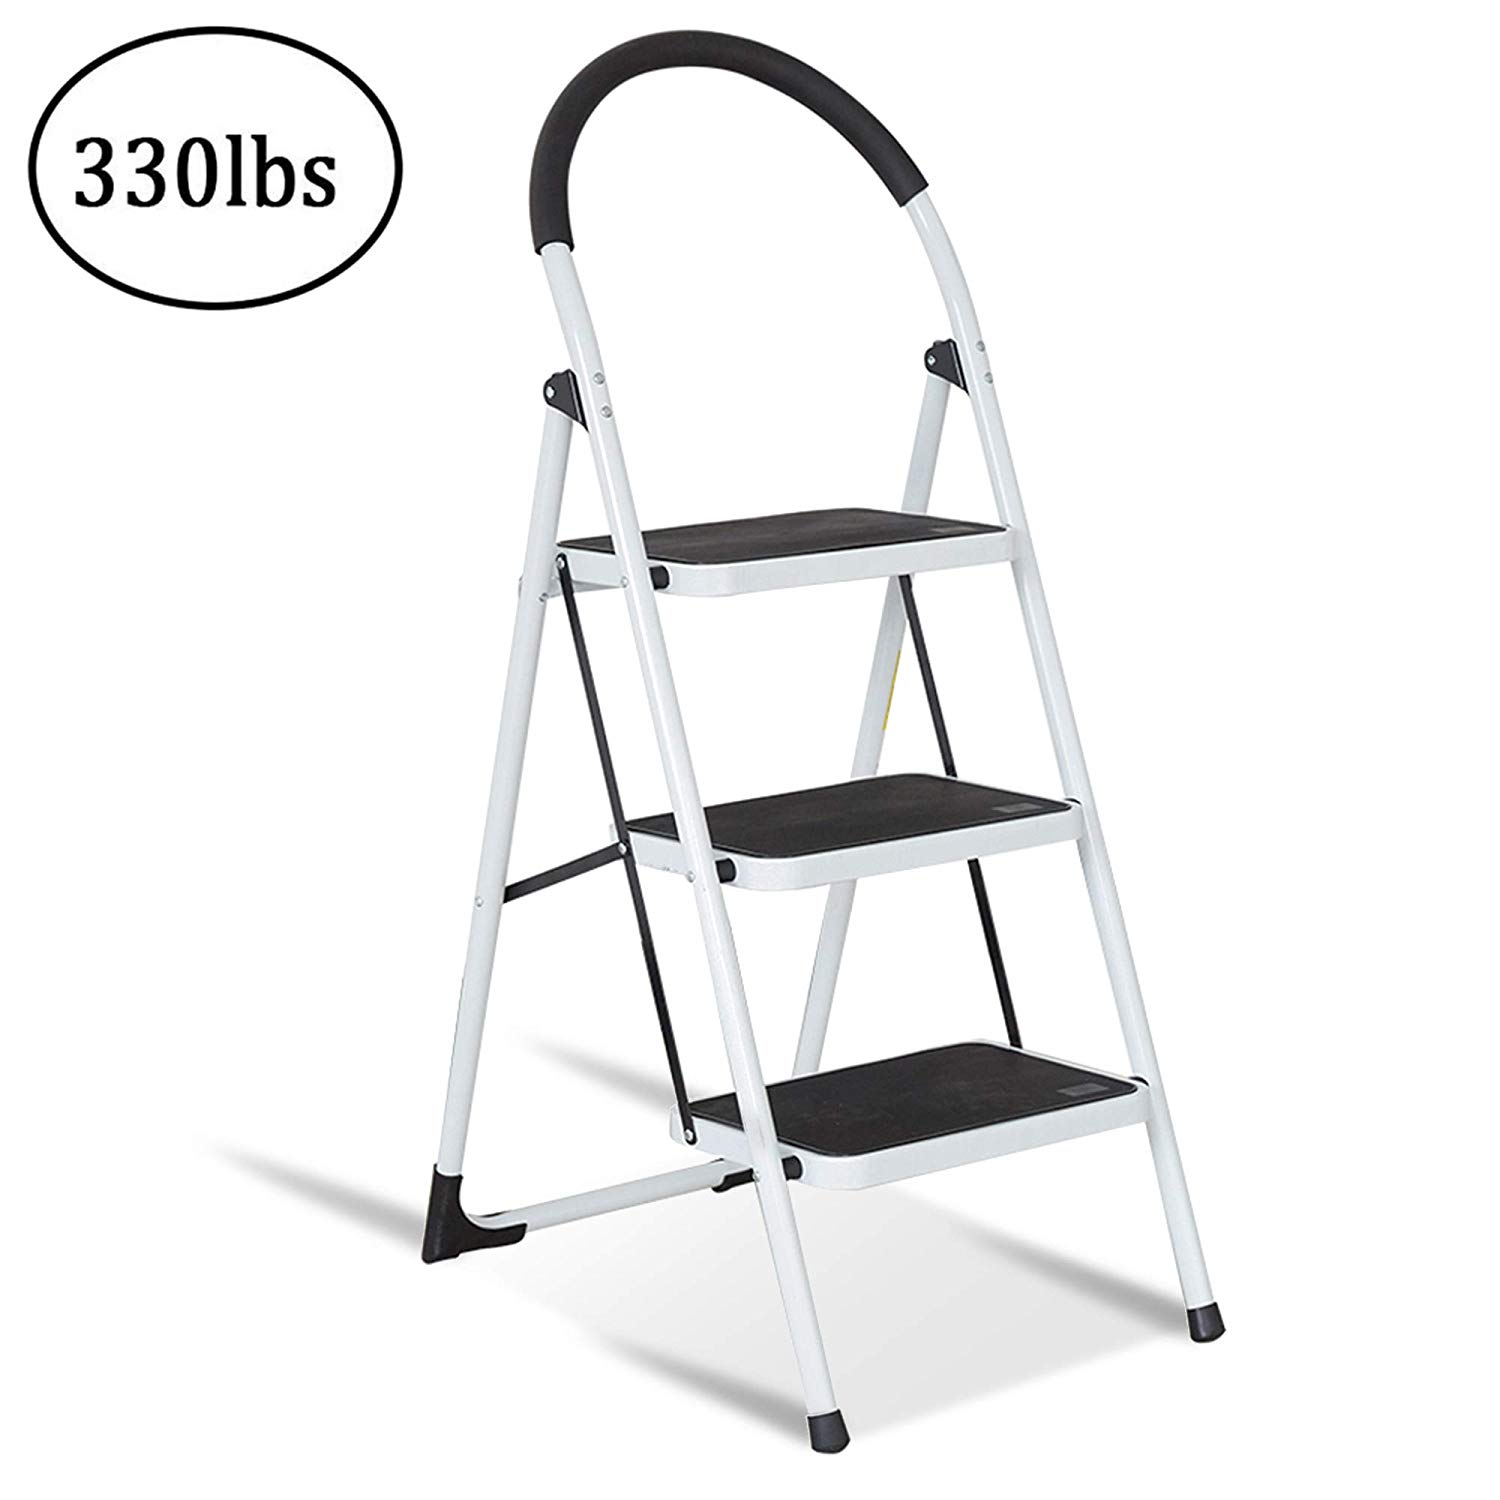 Ubesgoo Anti Slip 3 Step Ladder Lightweight En131 Sturdy